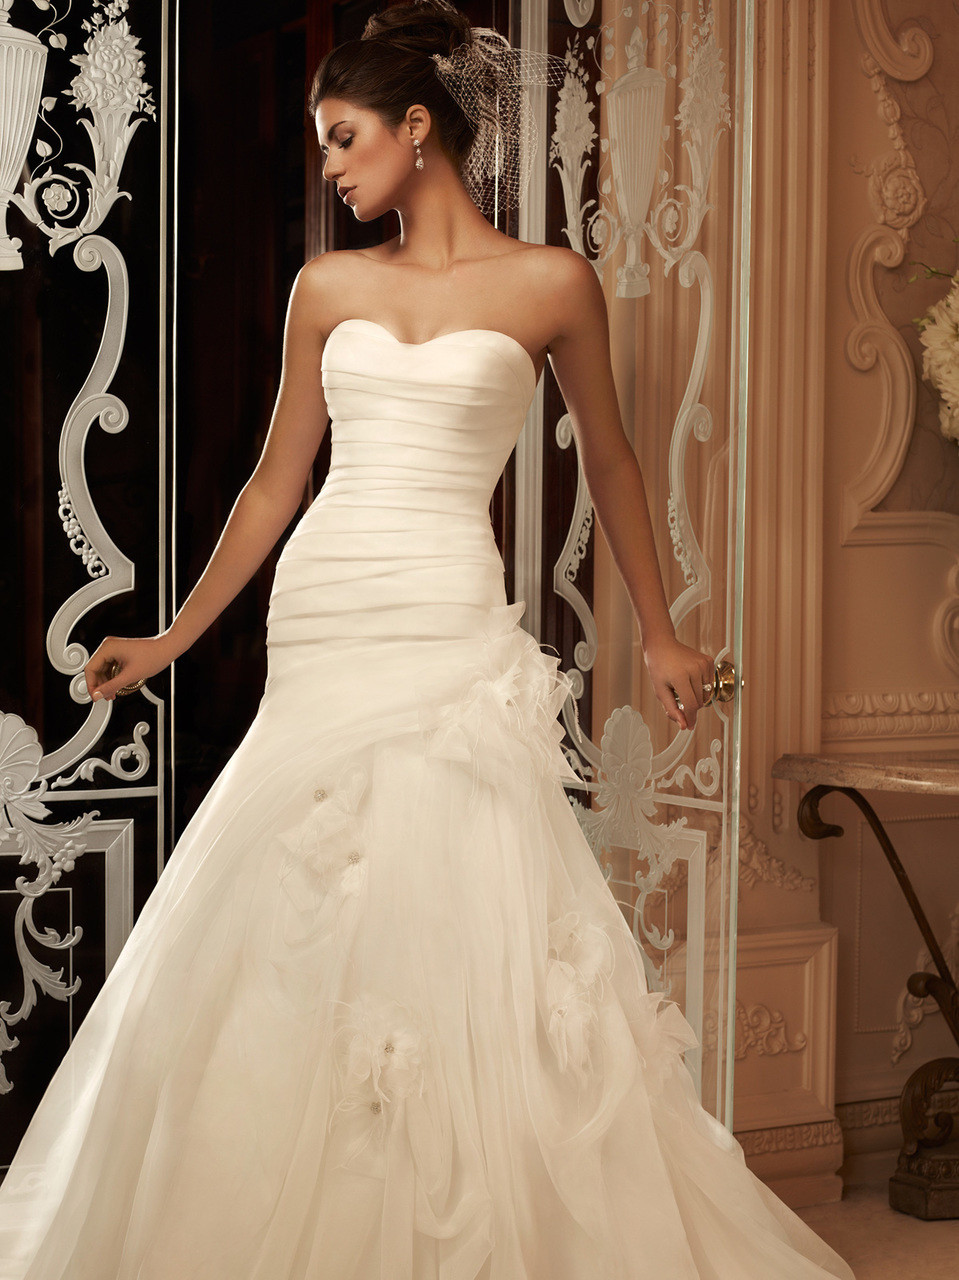 Sweetheart Pleated Organza Bridal Gown Casablanca 2105 - Dimitra Designs